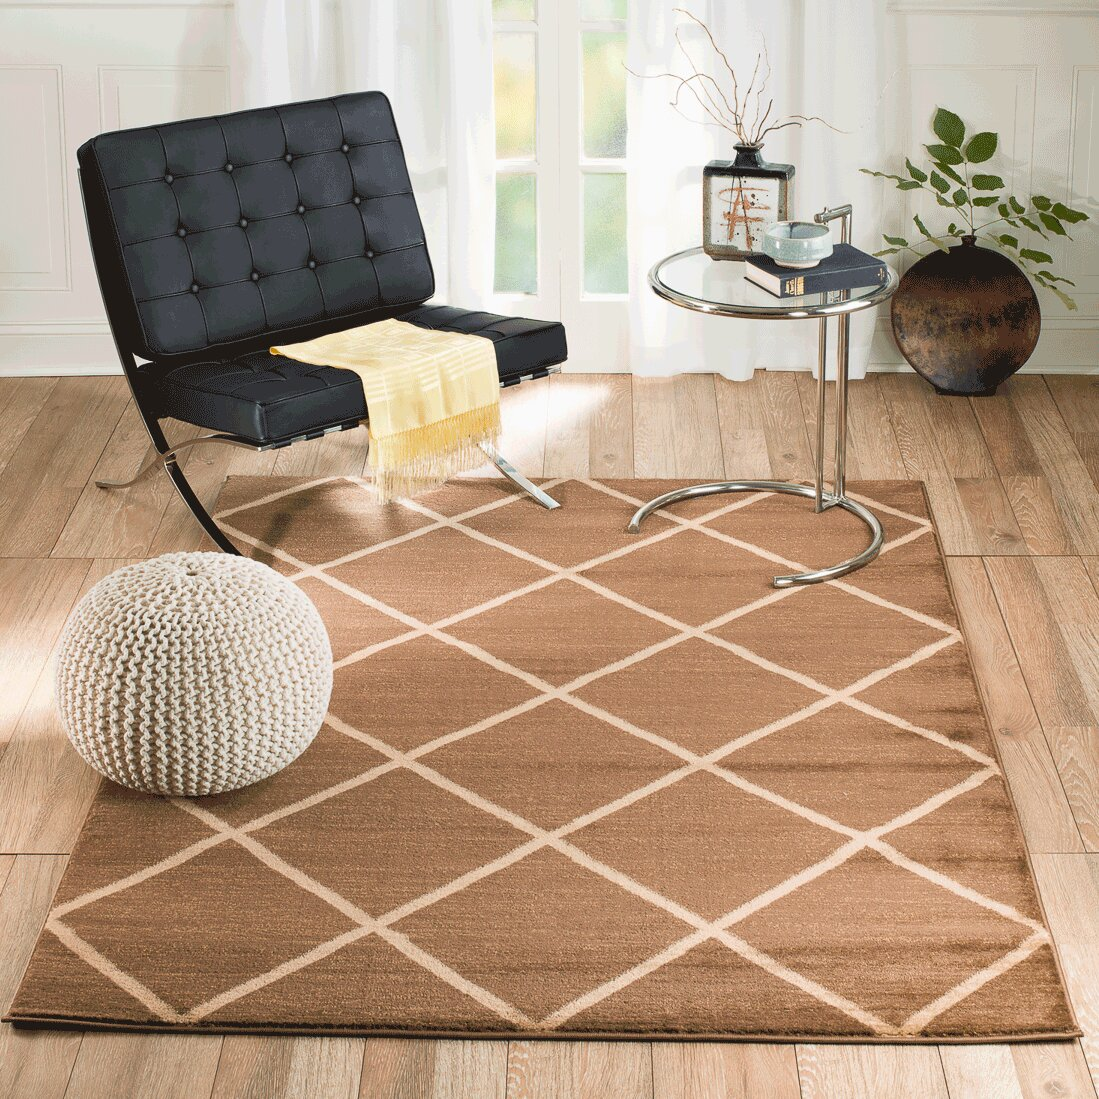 Rug and decor inc venice machine woven brown indoor area for Decor international handwoven rugs